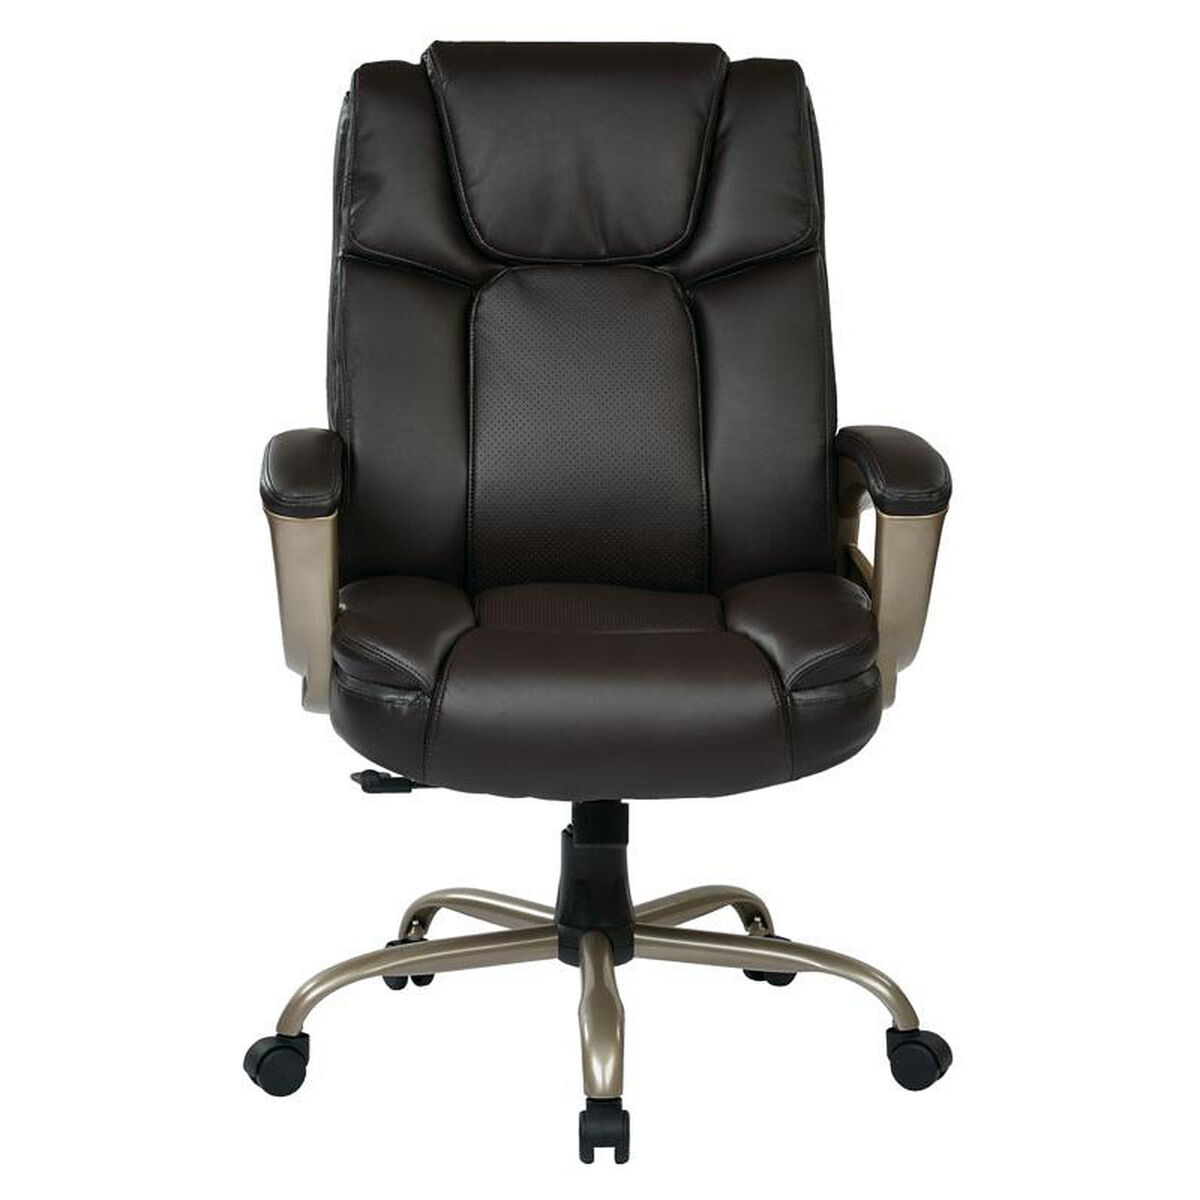 office chair 350 lb weight capacity sante blog